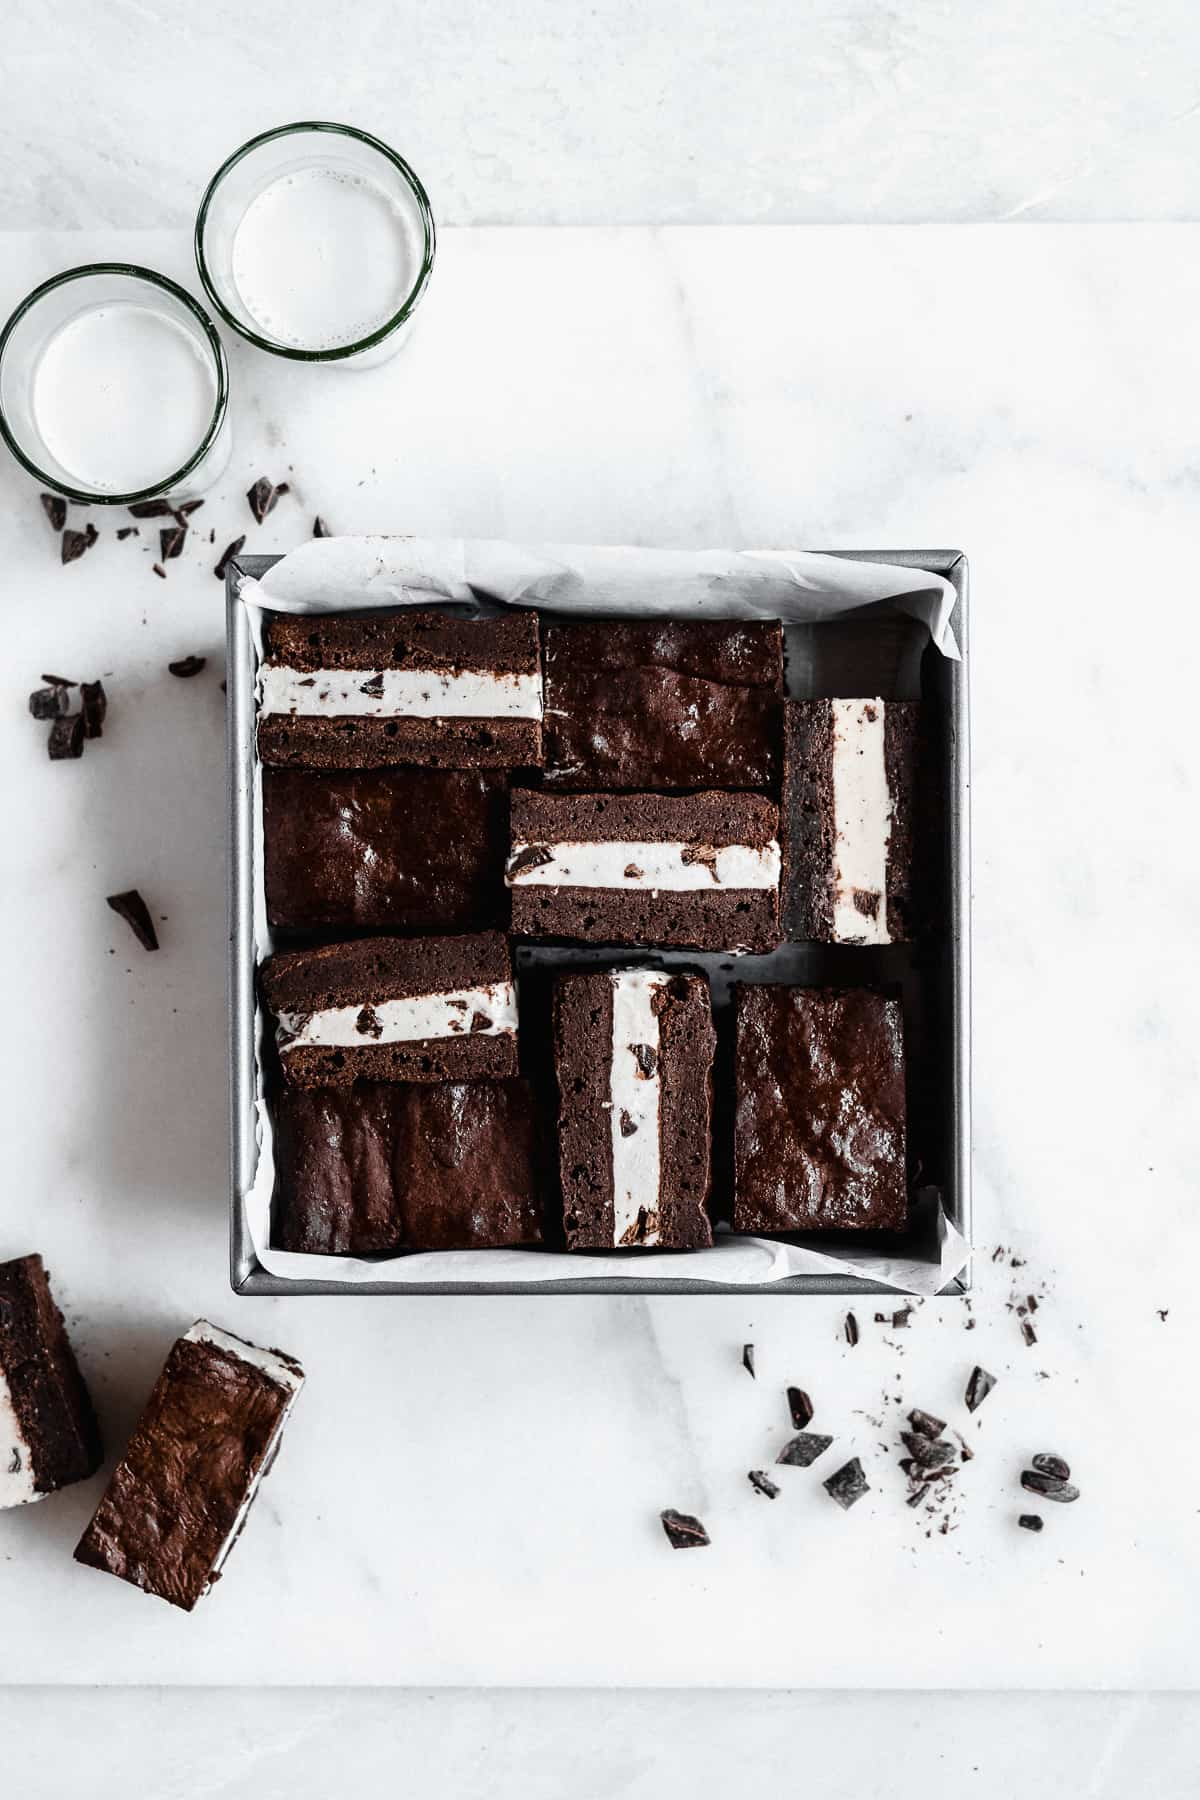 Overhead photo of a square metal baking pan that was used to house the Brownie Ice Cream Sandwiches while they froze.  The Brownie Ice Cream Sandwiches have been cut into squares.